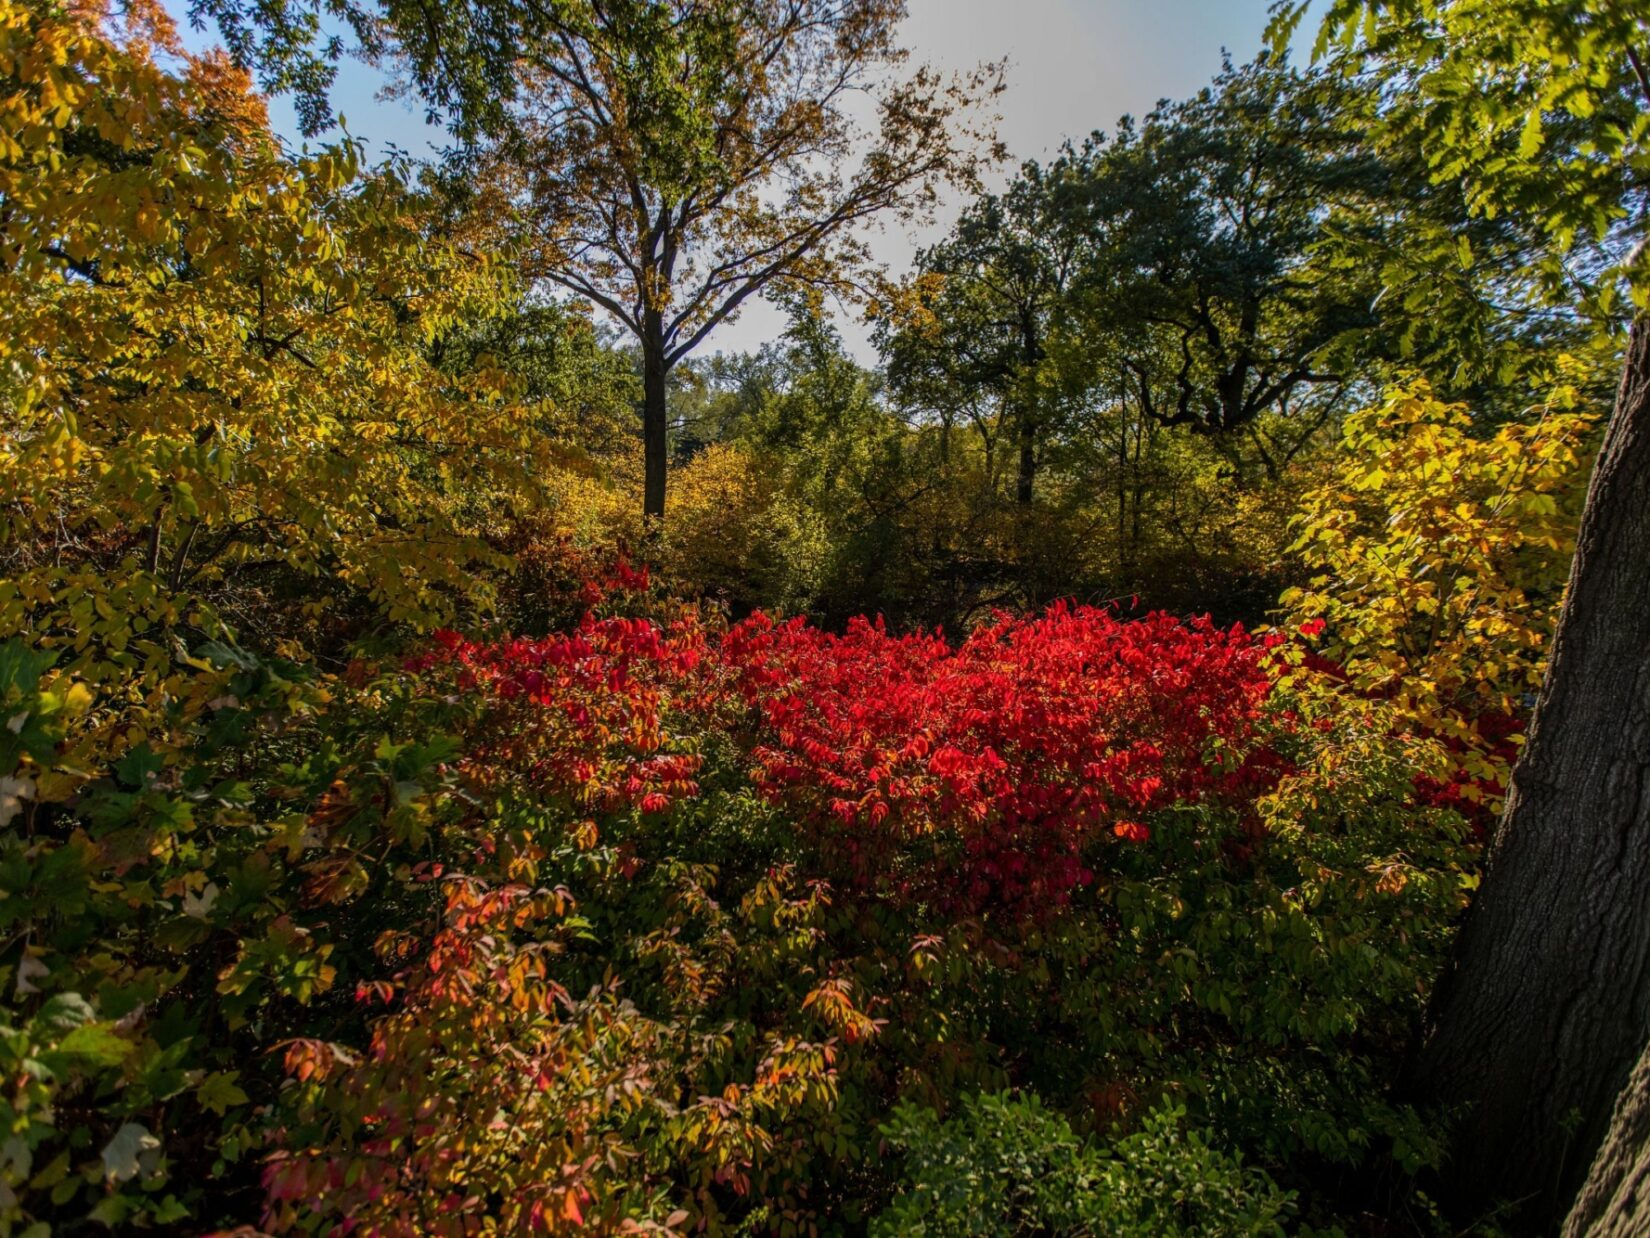 The foliage around the Reservoir displays stunning bursts of color.